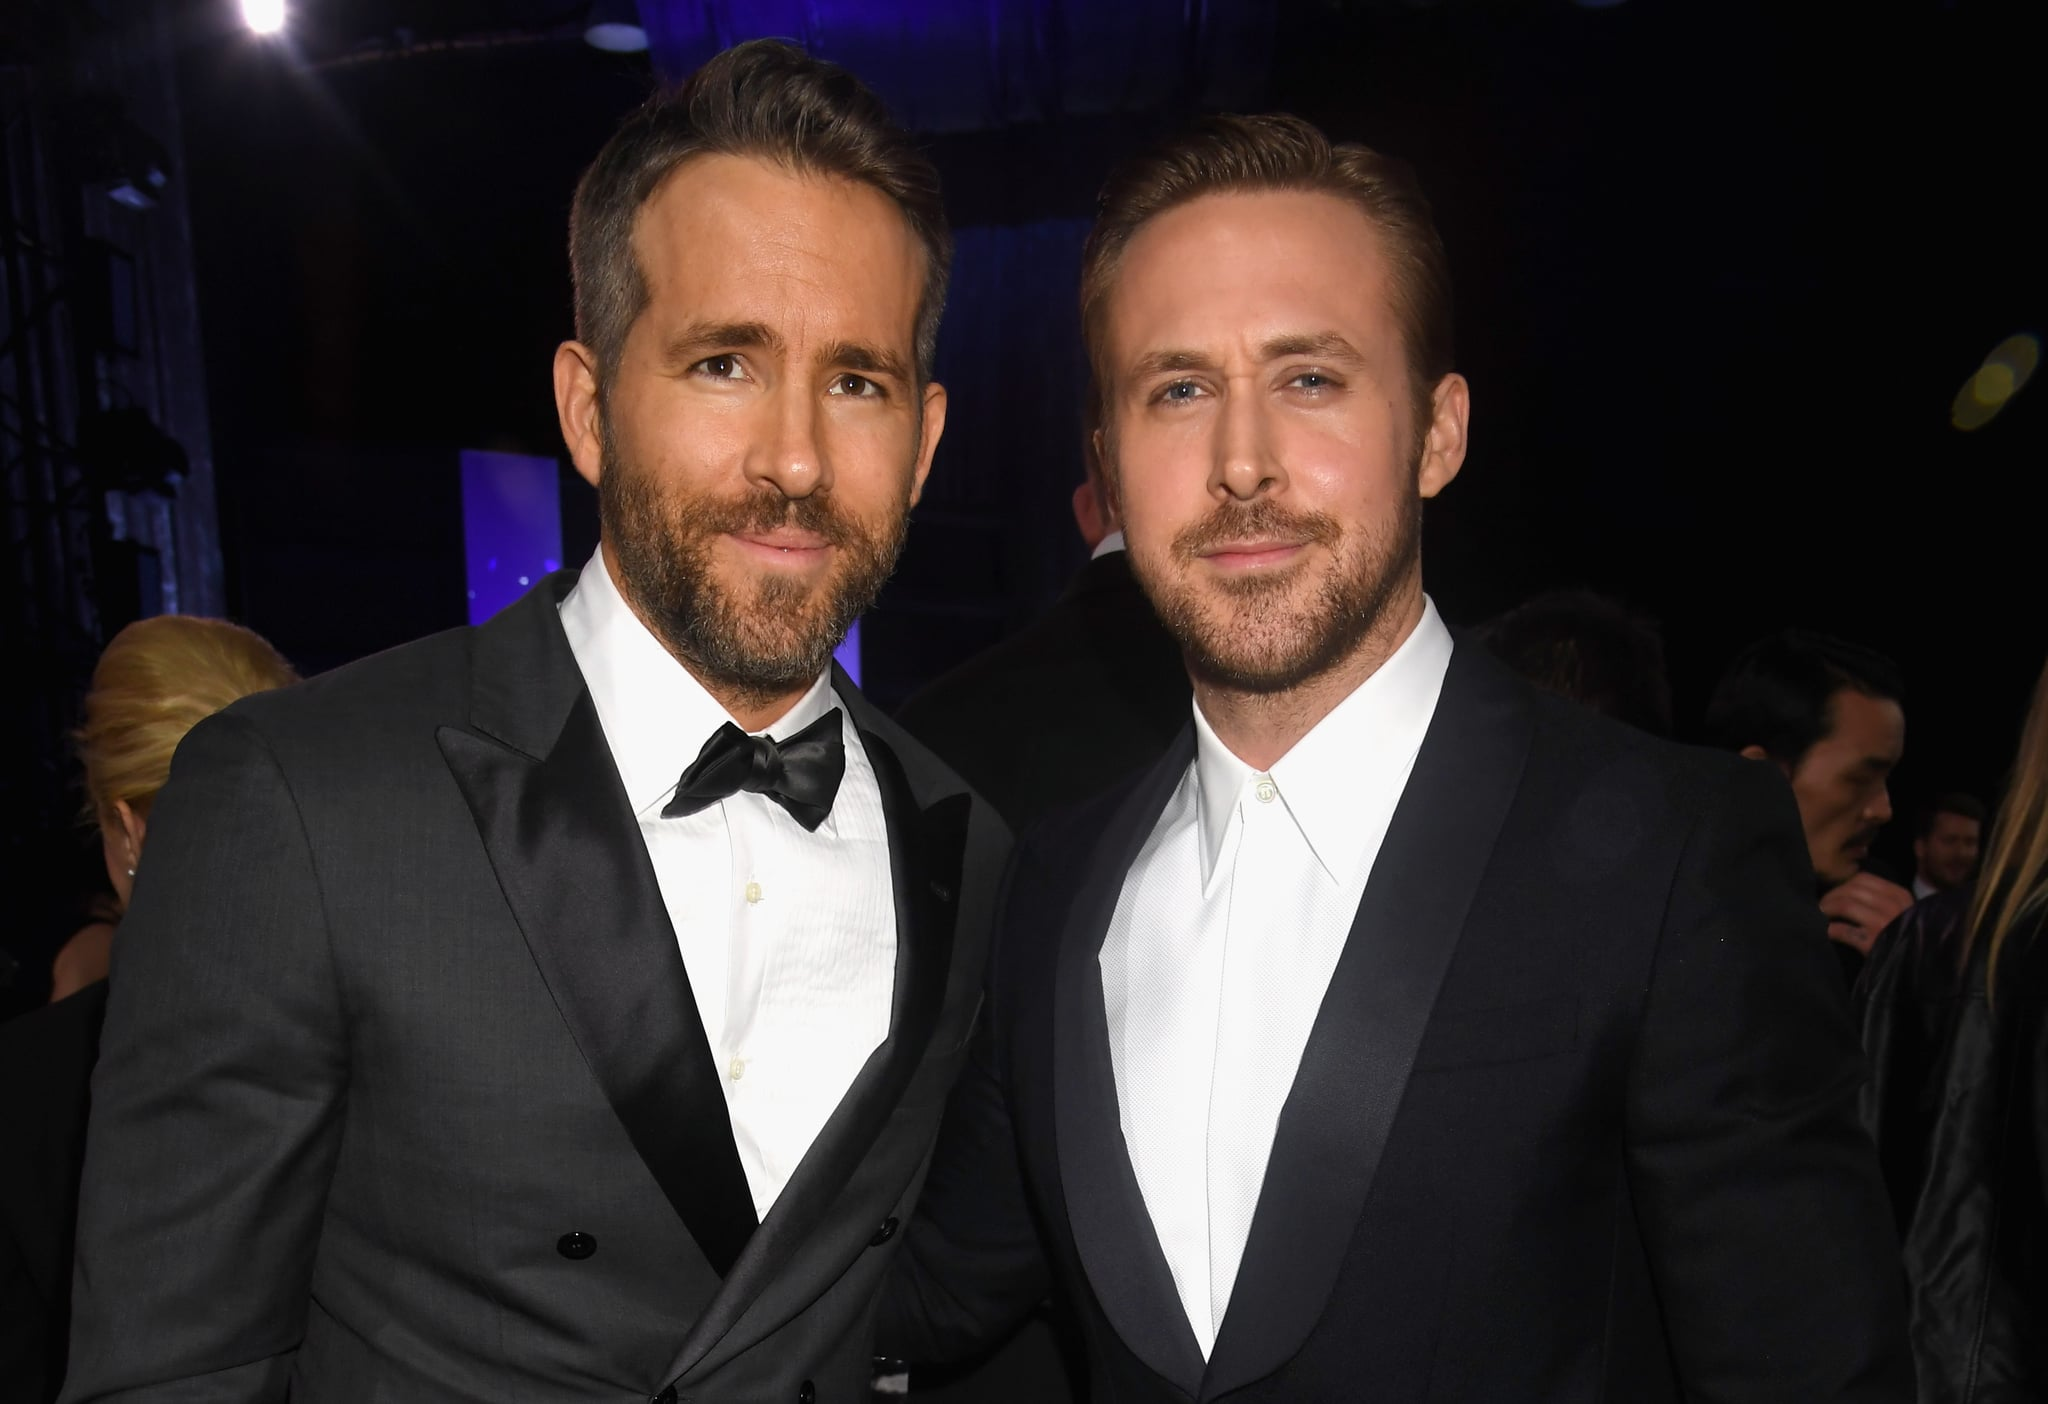 ryan reynolds and ryan gosling hotness poll popsugar celebrity. Black Bedroom Furniture Sets. Home Design Ideas